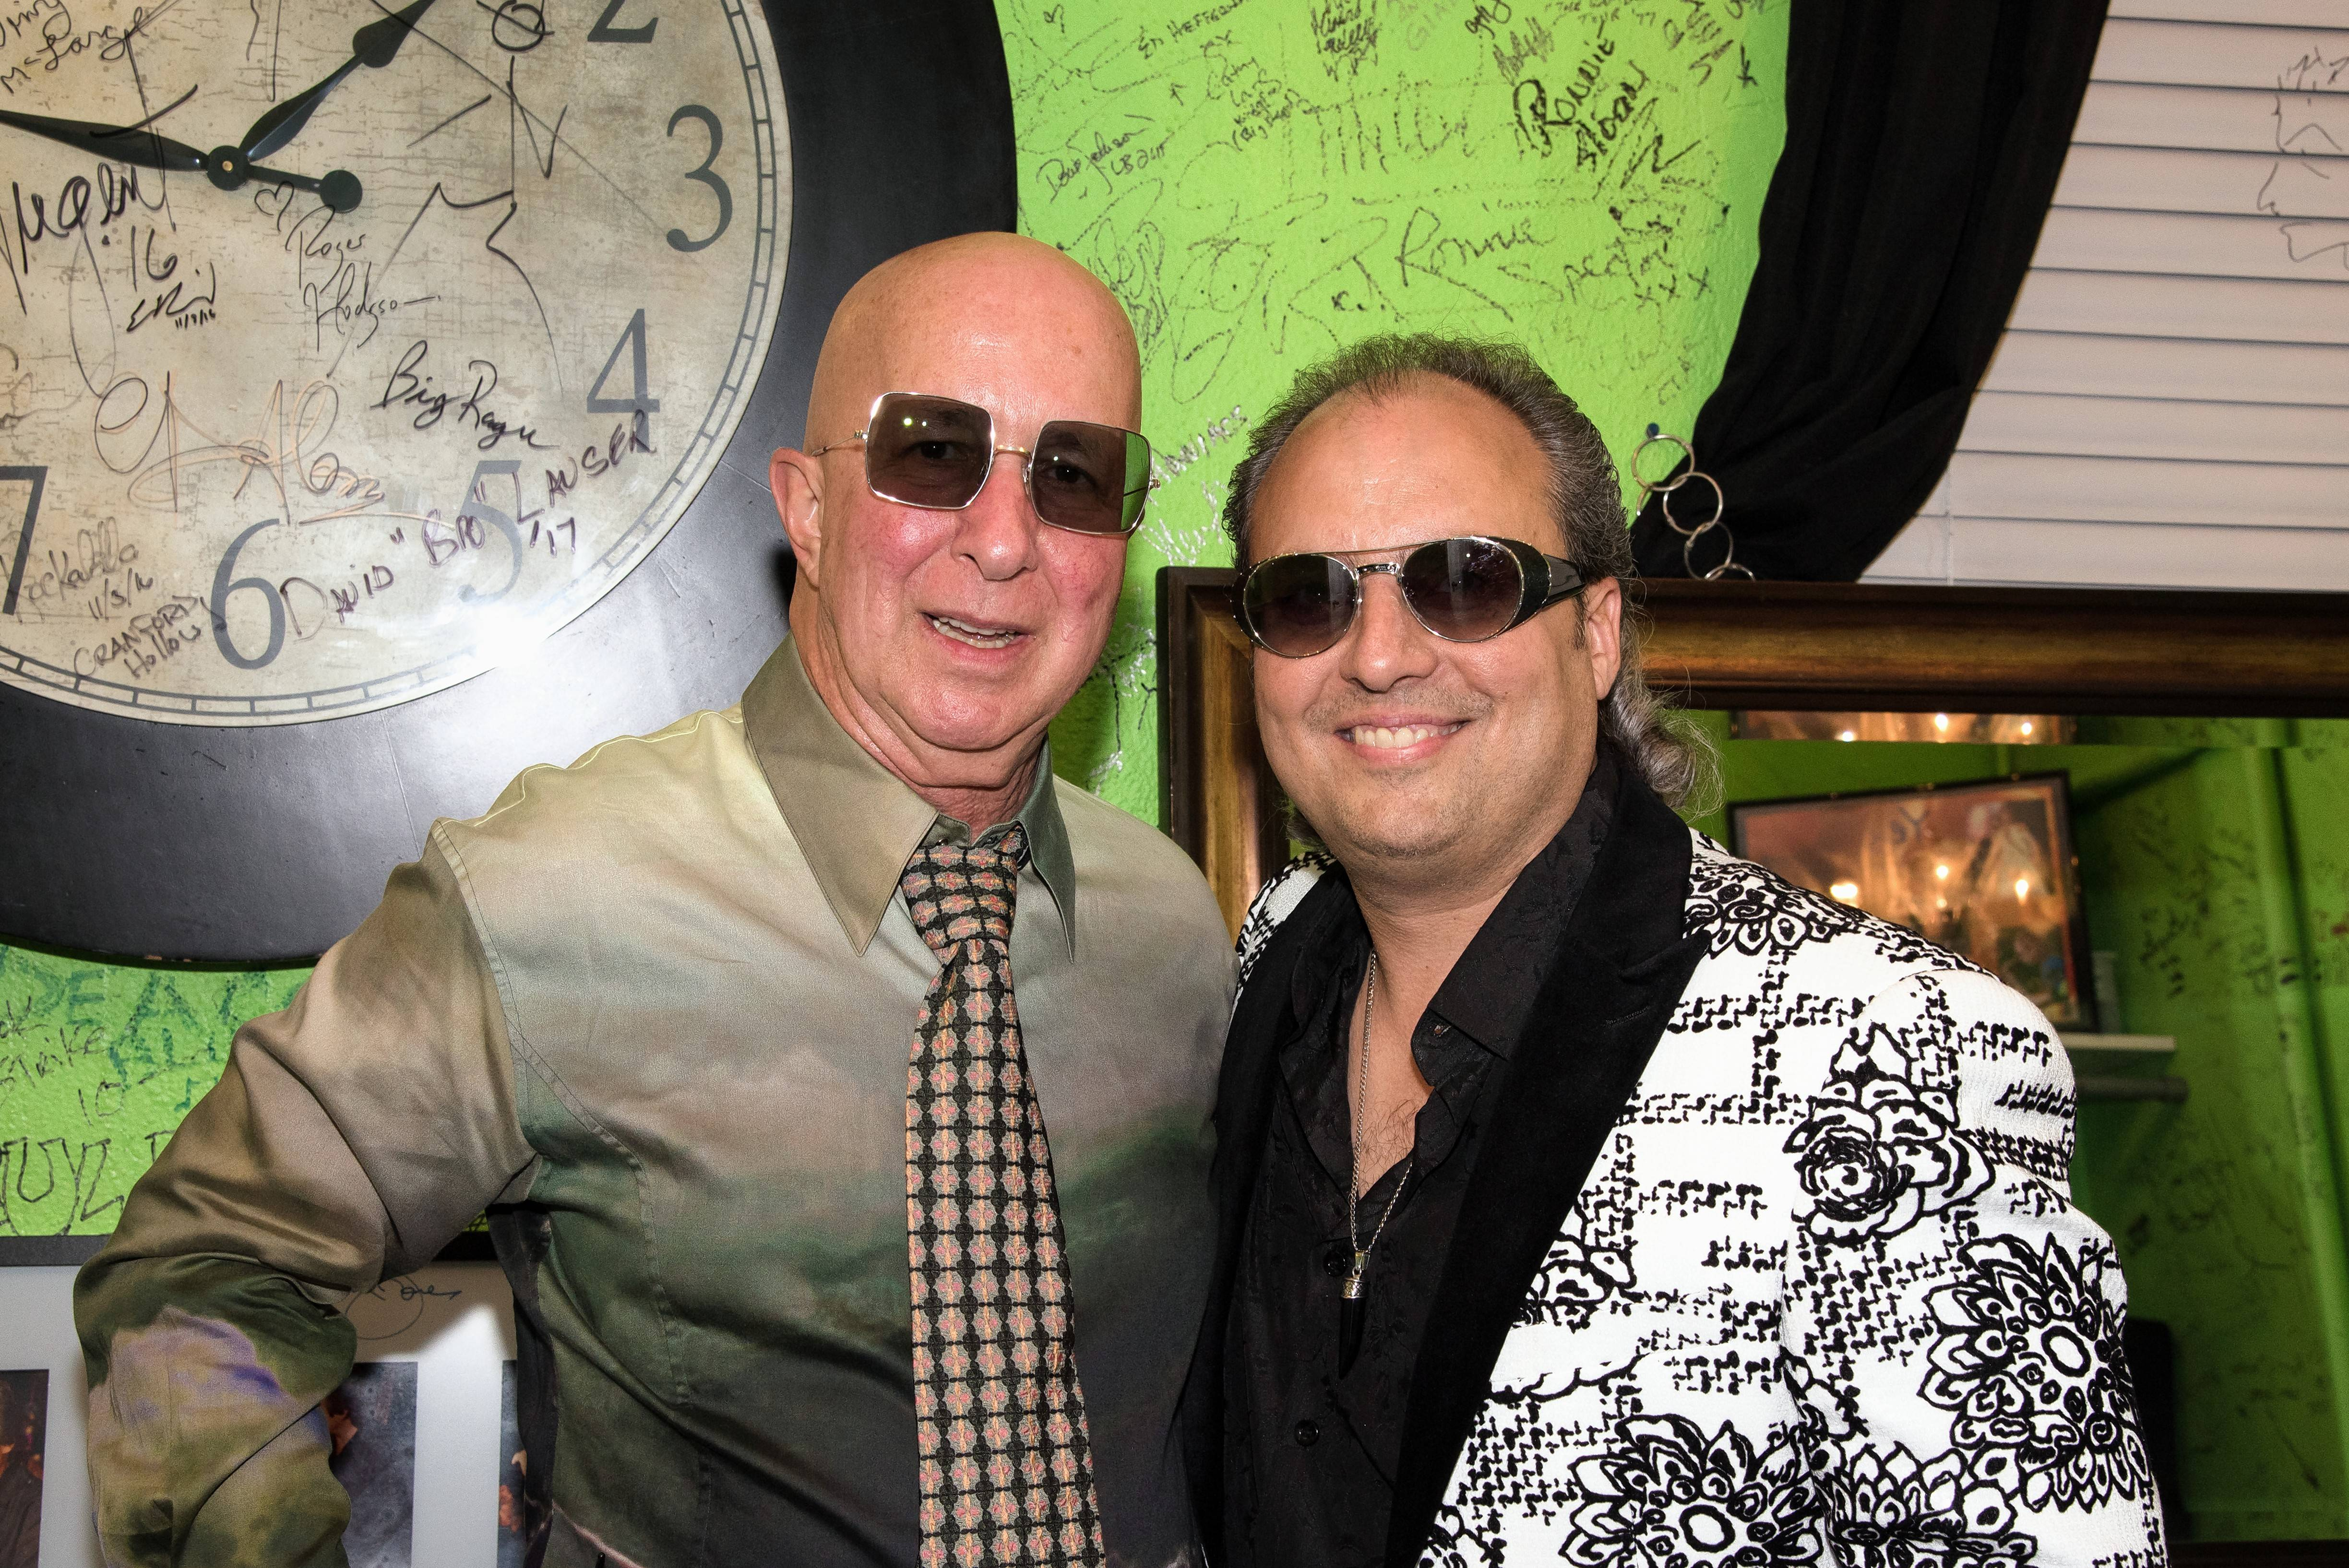 Paul Shaffer, left, musical director extraordinaire who is also known for his wild glasses and clothing, lent a pair of his sunglasses to Ron Onesti last week when he performed at The Arcada.